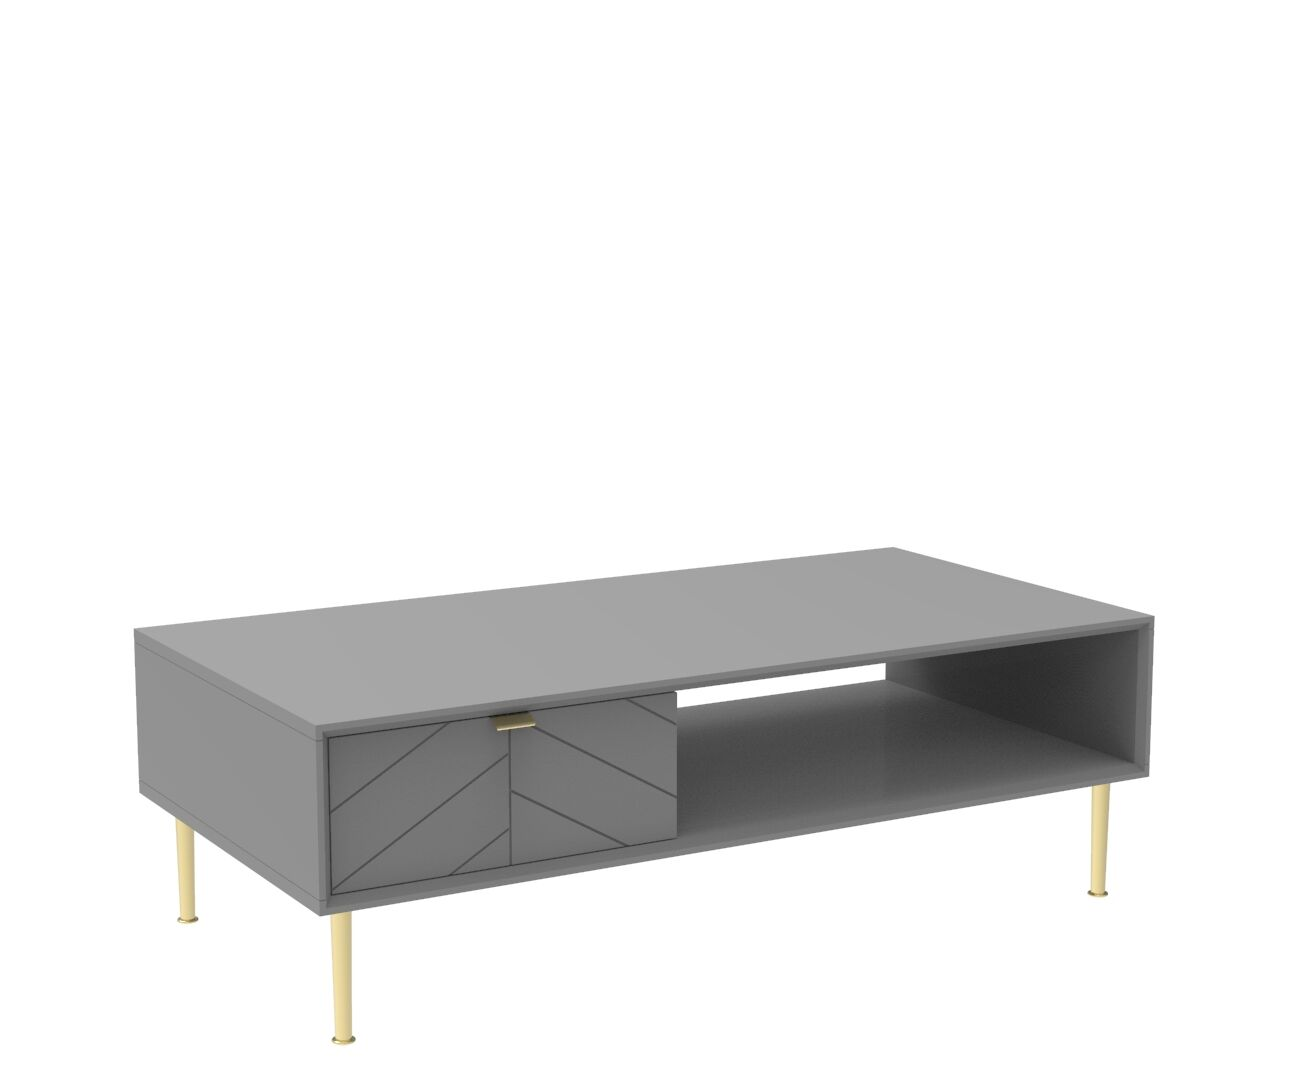 Chevron-patterned Adele Coffee Table in Mist Grey and Brass